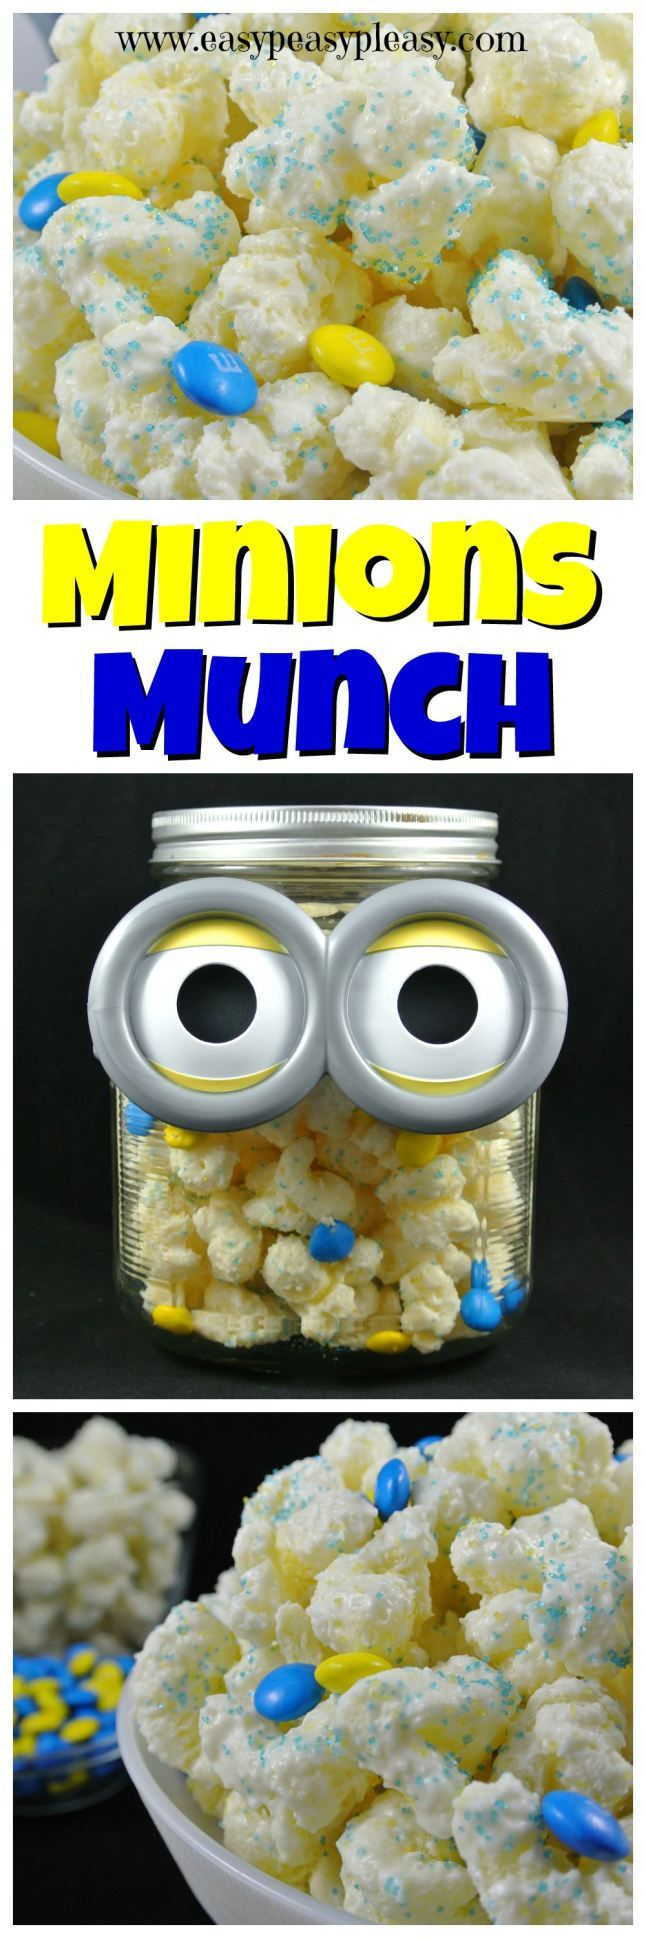 Minions Munch is super easy to make in only 5 minutes with only 3 ingredients and there's no popcorn in this recipe! This sweet snack is perfect for birthday parties, sleepovers, and movie watching!